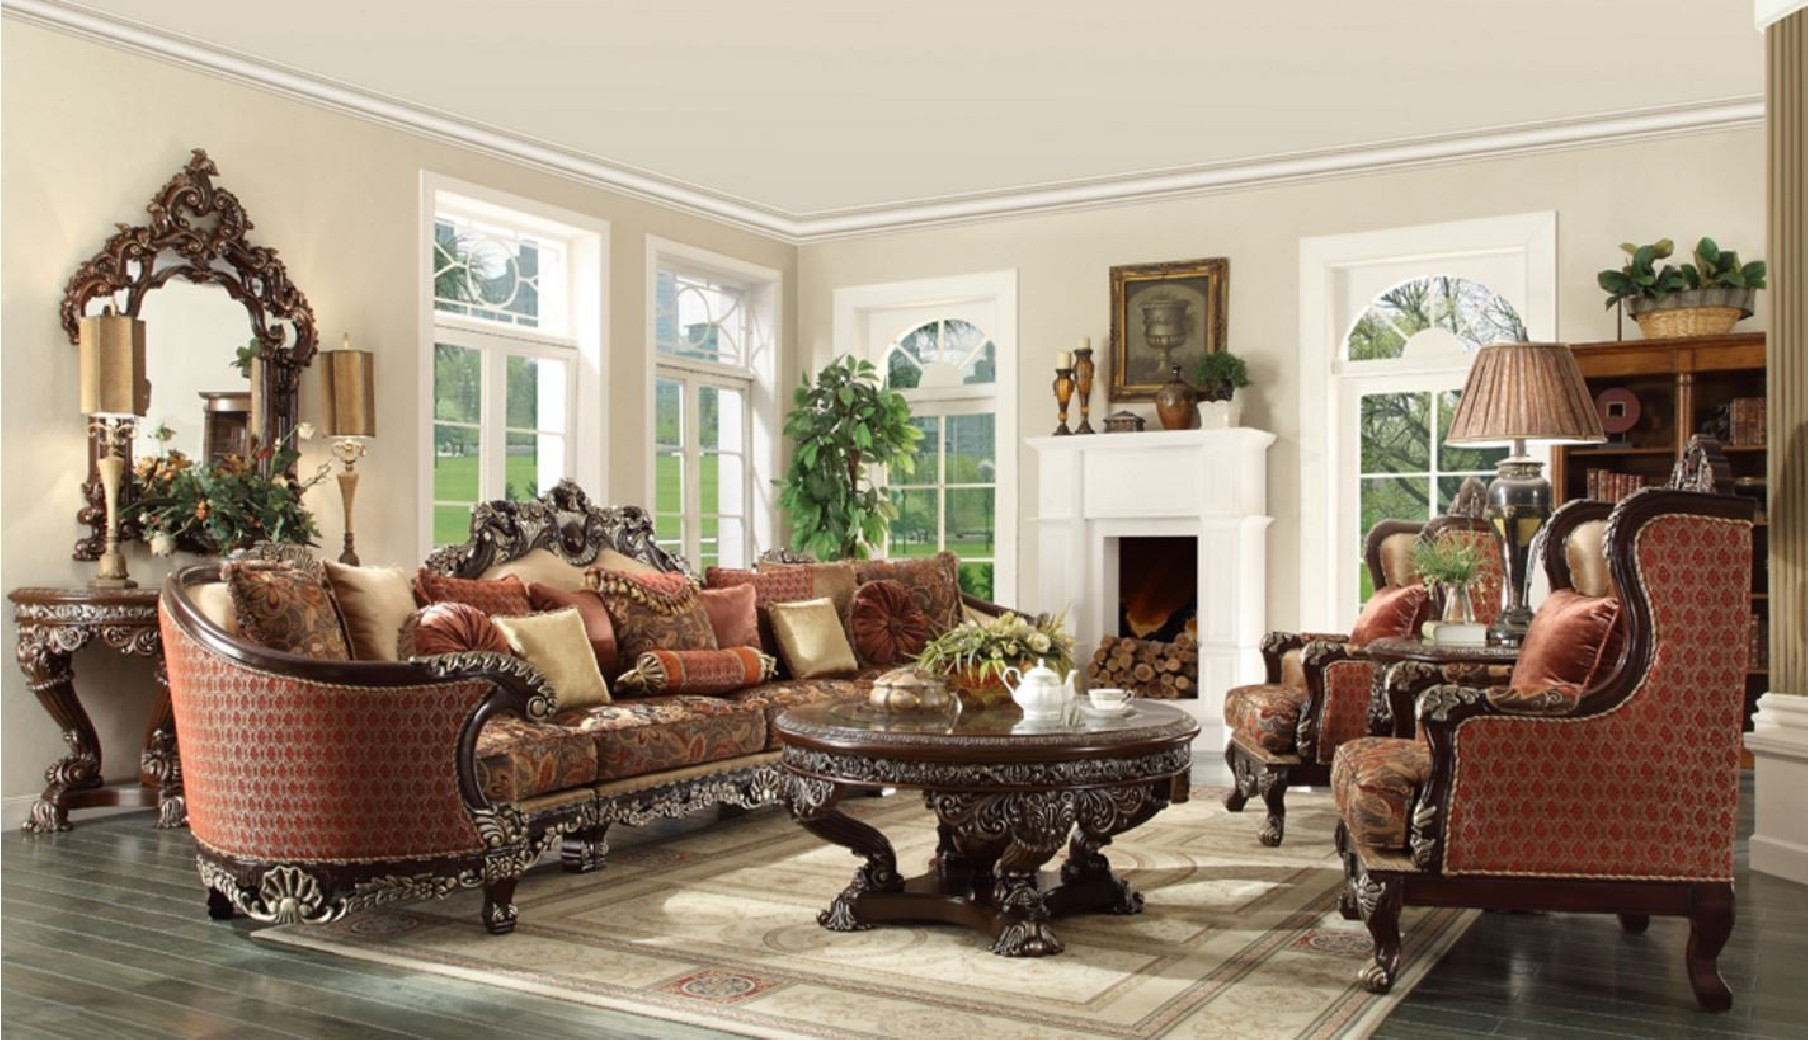 Hd 111 Homey Design Upholstery Living Room Set Victorian European in 10 Genius Tricks of How to Upgrade Upholstered Living Room Sets